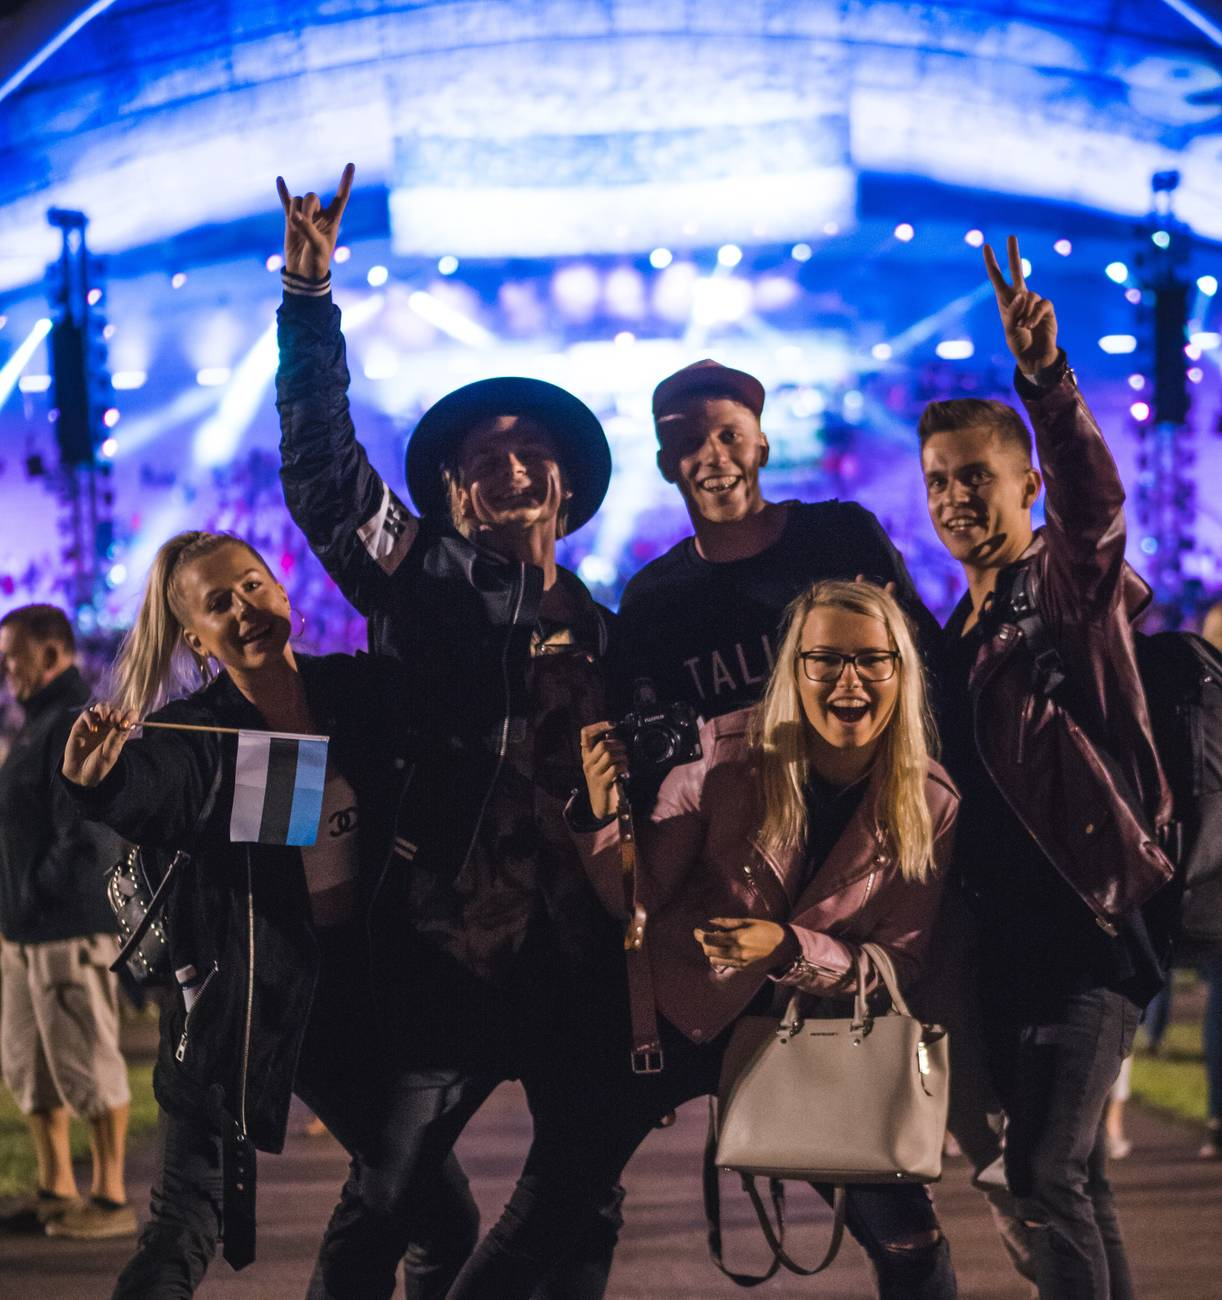 Young people having fun at Tallinn Song Festival Grounds Photo by: Mark Harrison